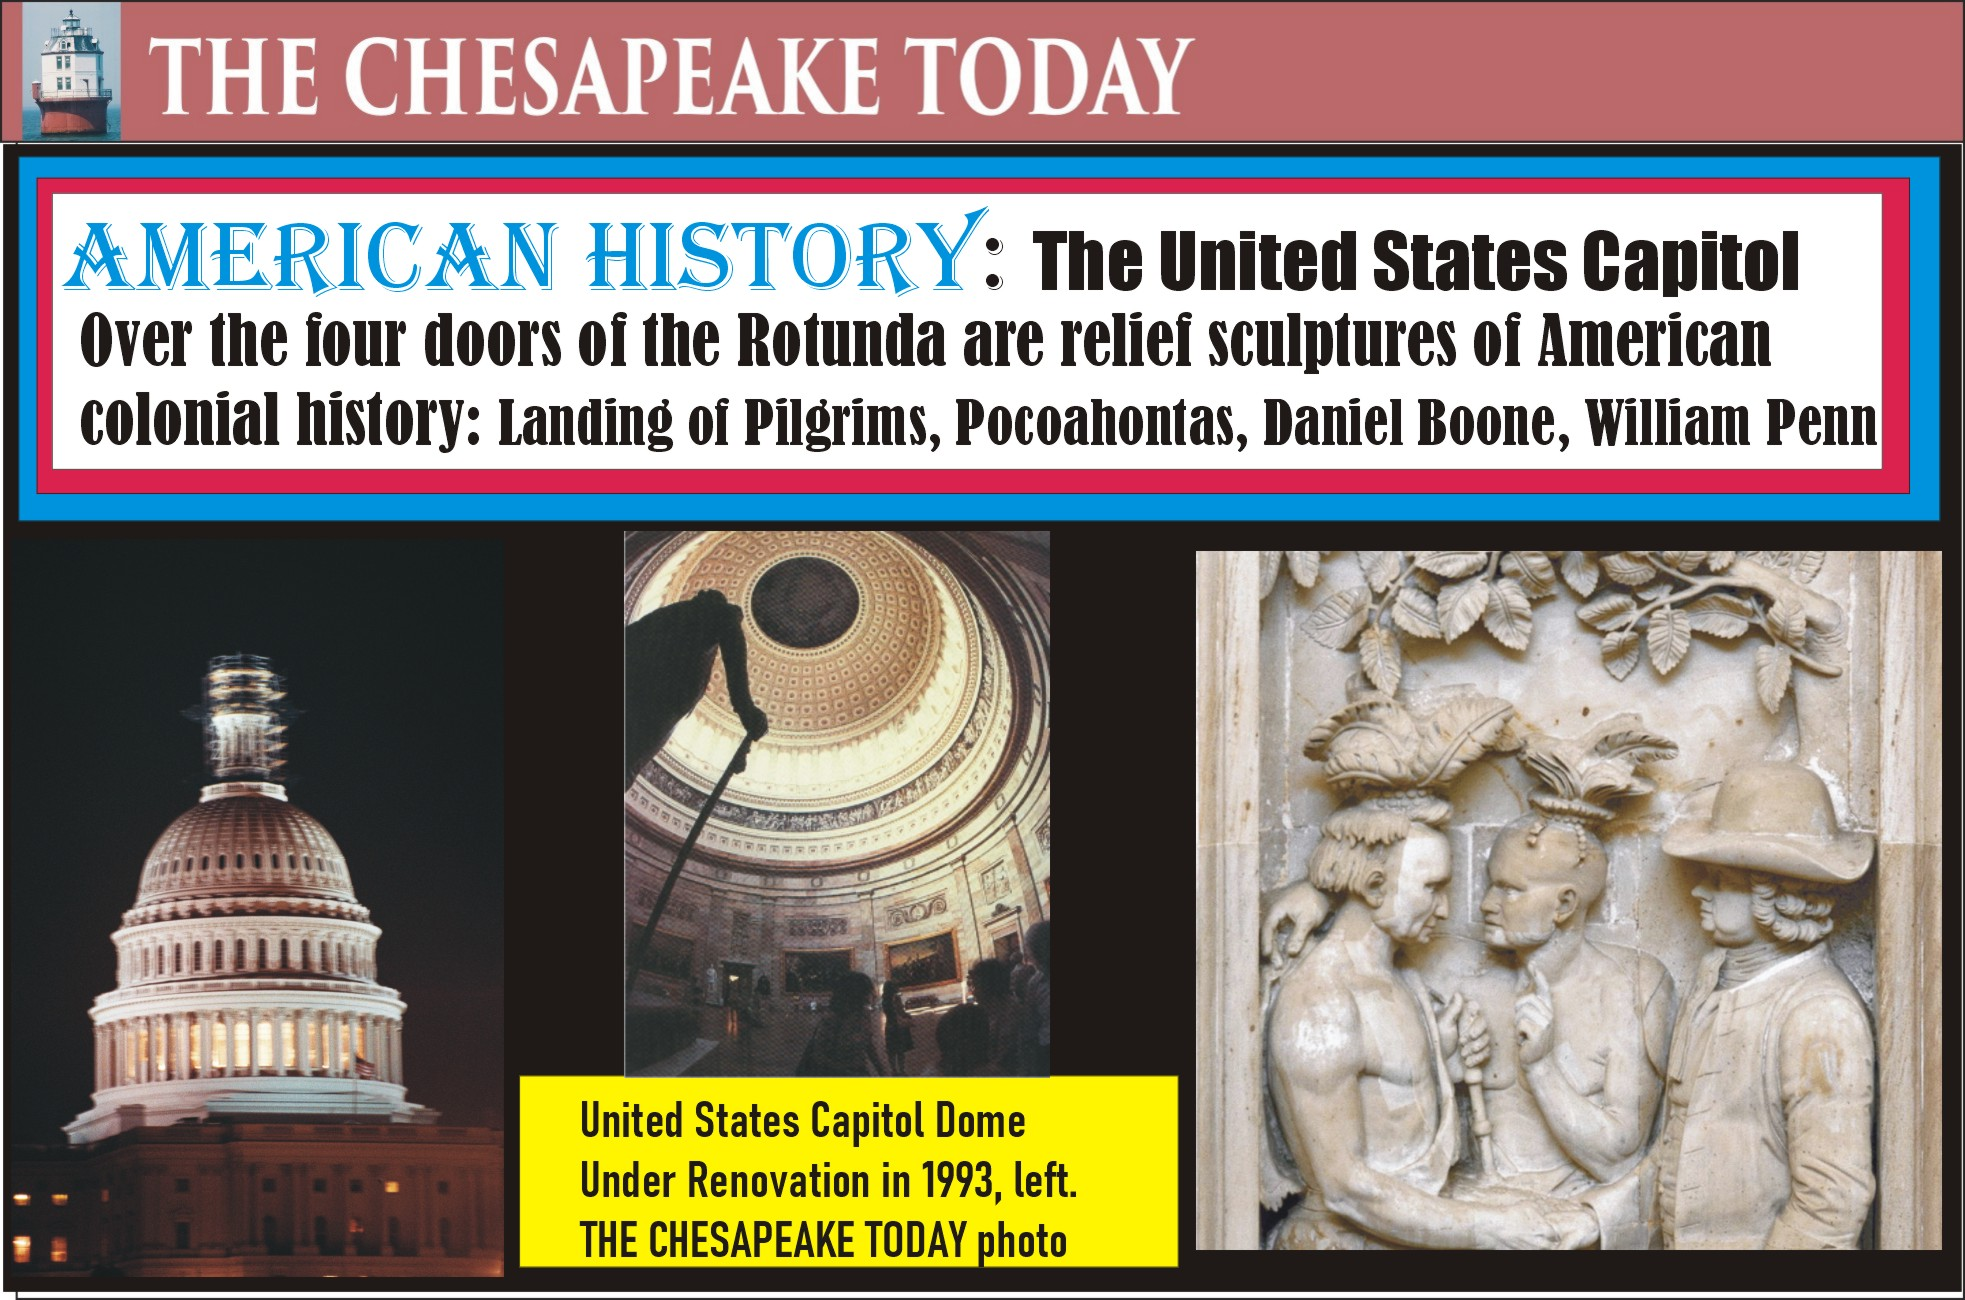 AMERICAN HISTORY: Sculptures that adorn the Rotunda of the United States Capitol